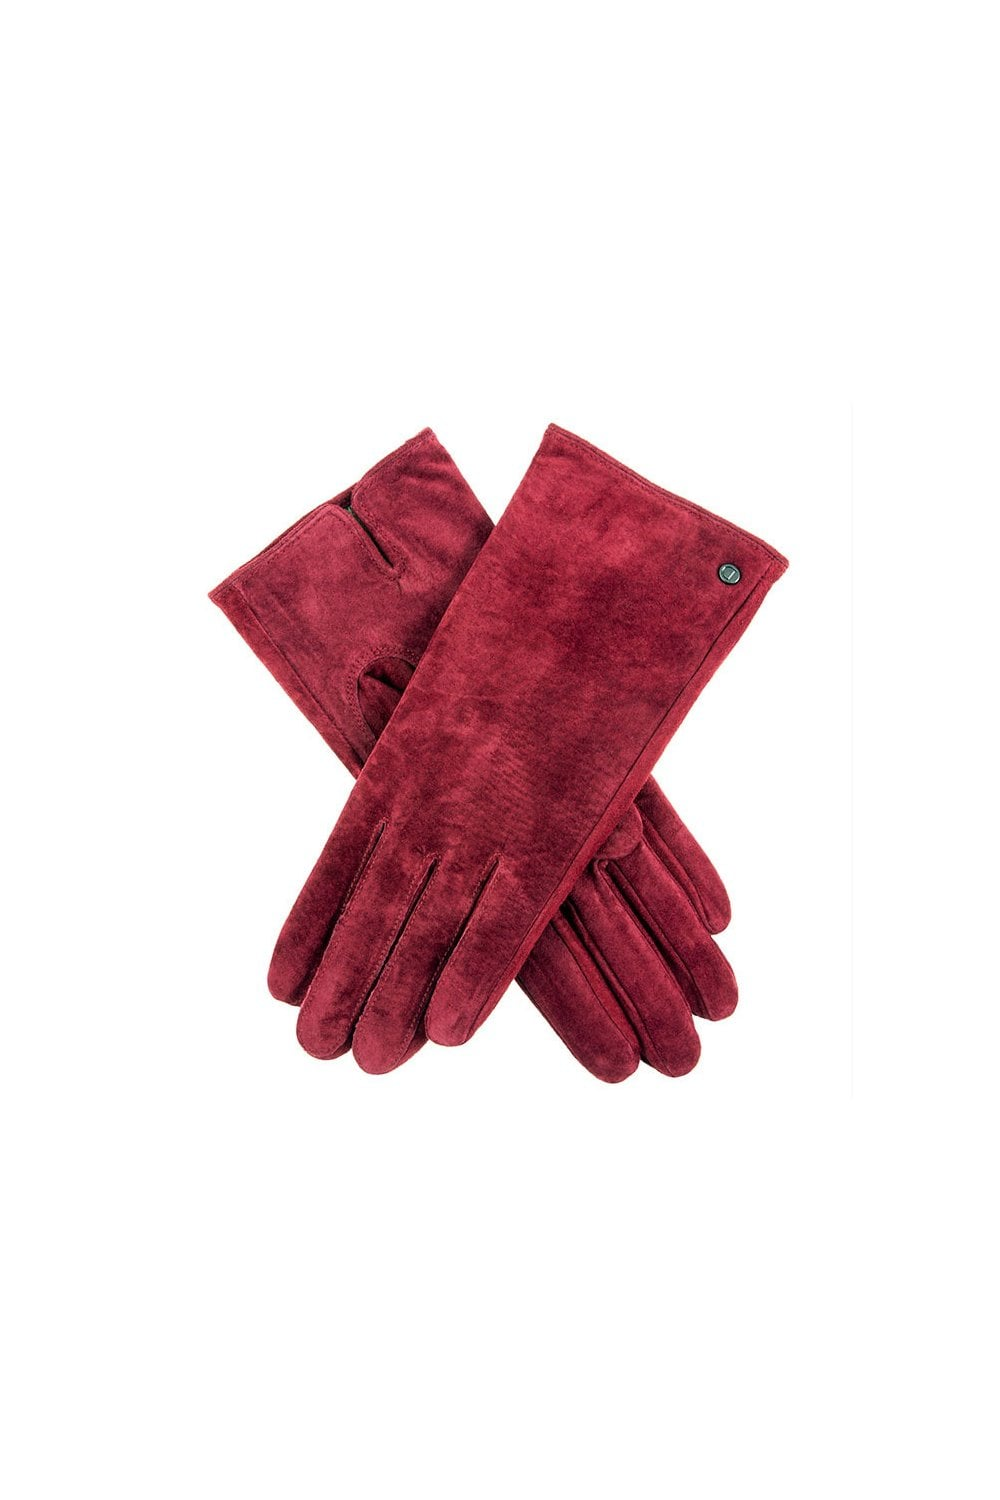 5fb141c5f08 Dents Womens Emily Plain Suede Gloves - Claret - Womenswear from ...